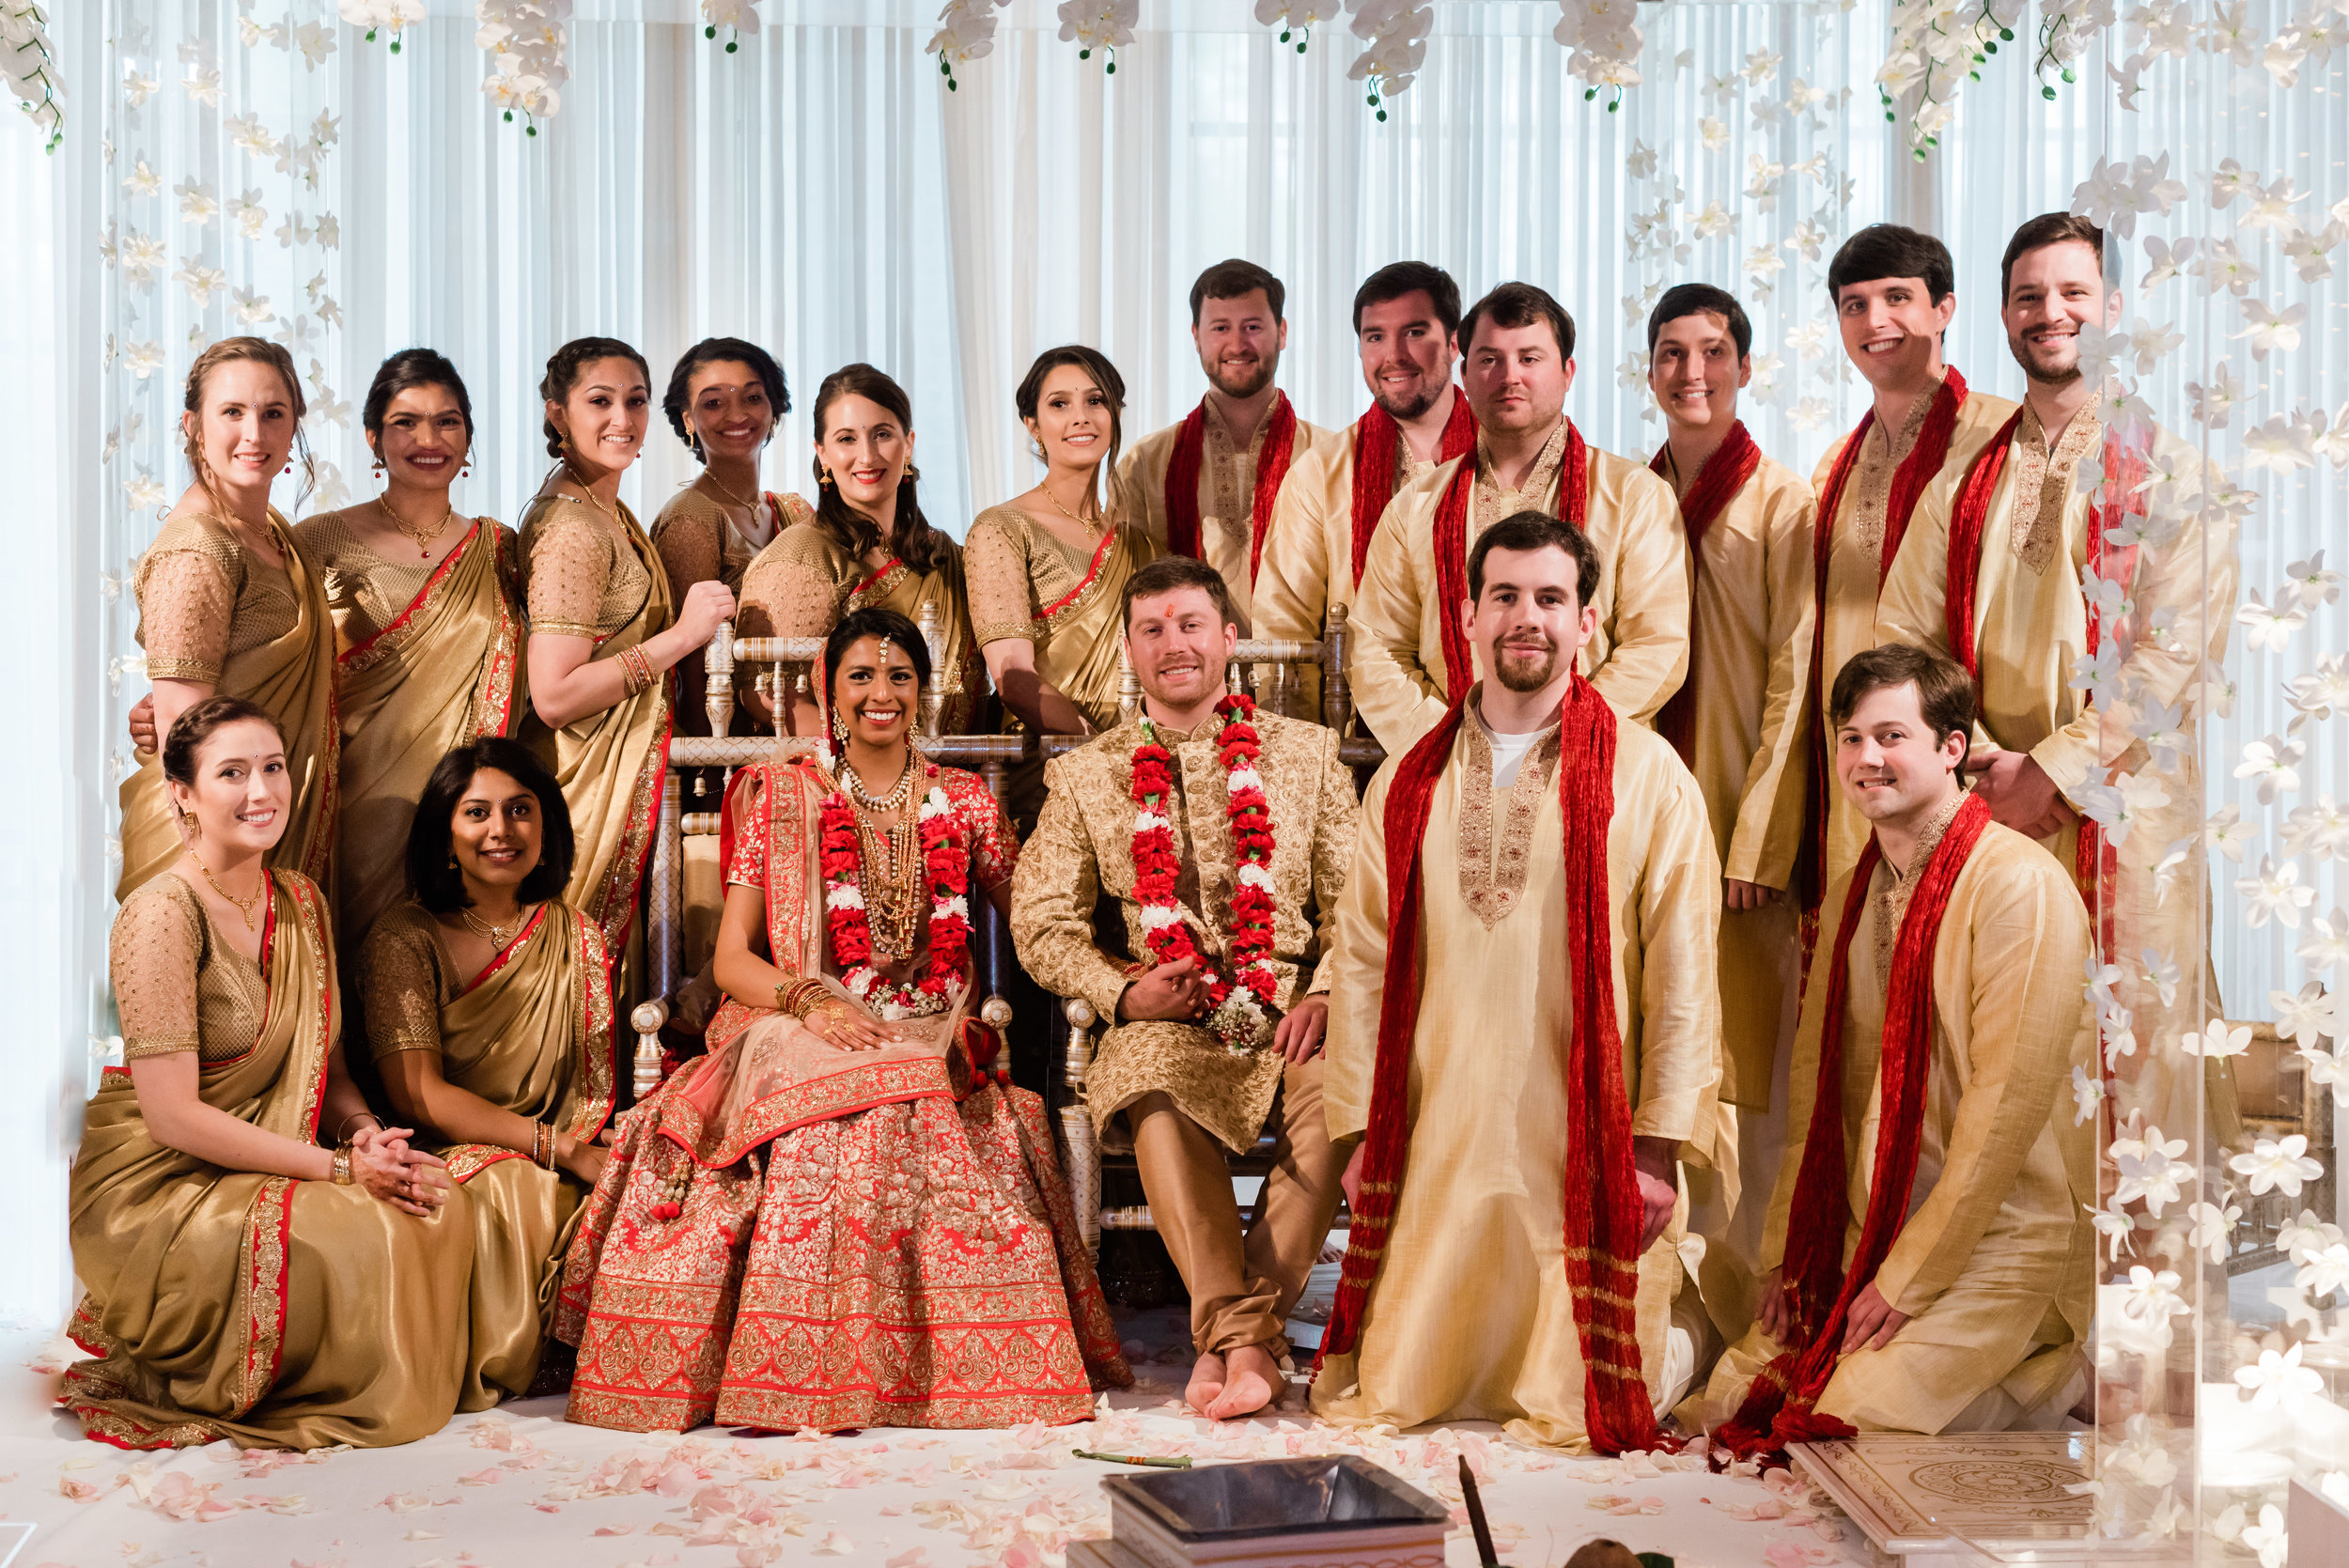 Justin_Priya_Fernicola_Wedding_Columbus_Georgia_Fallen_Photography-1145.JPG